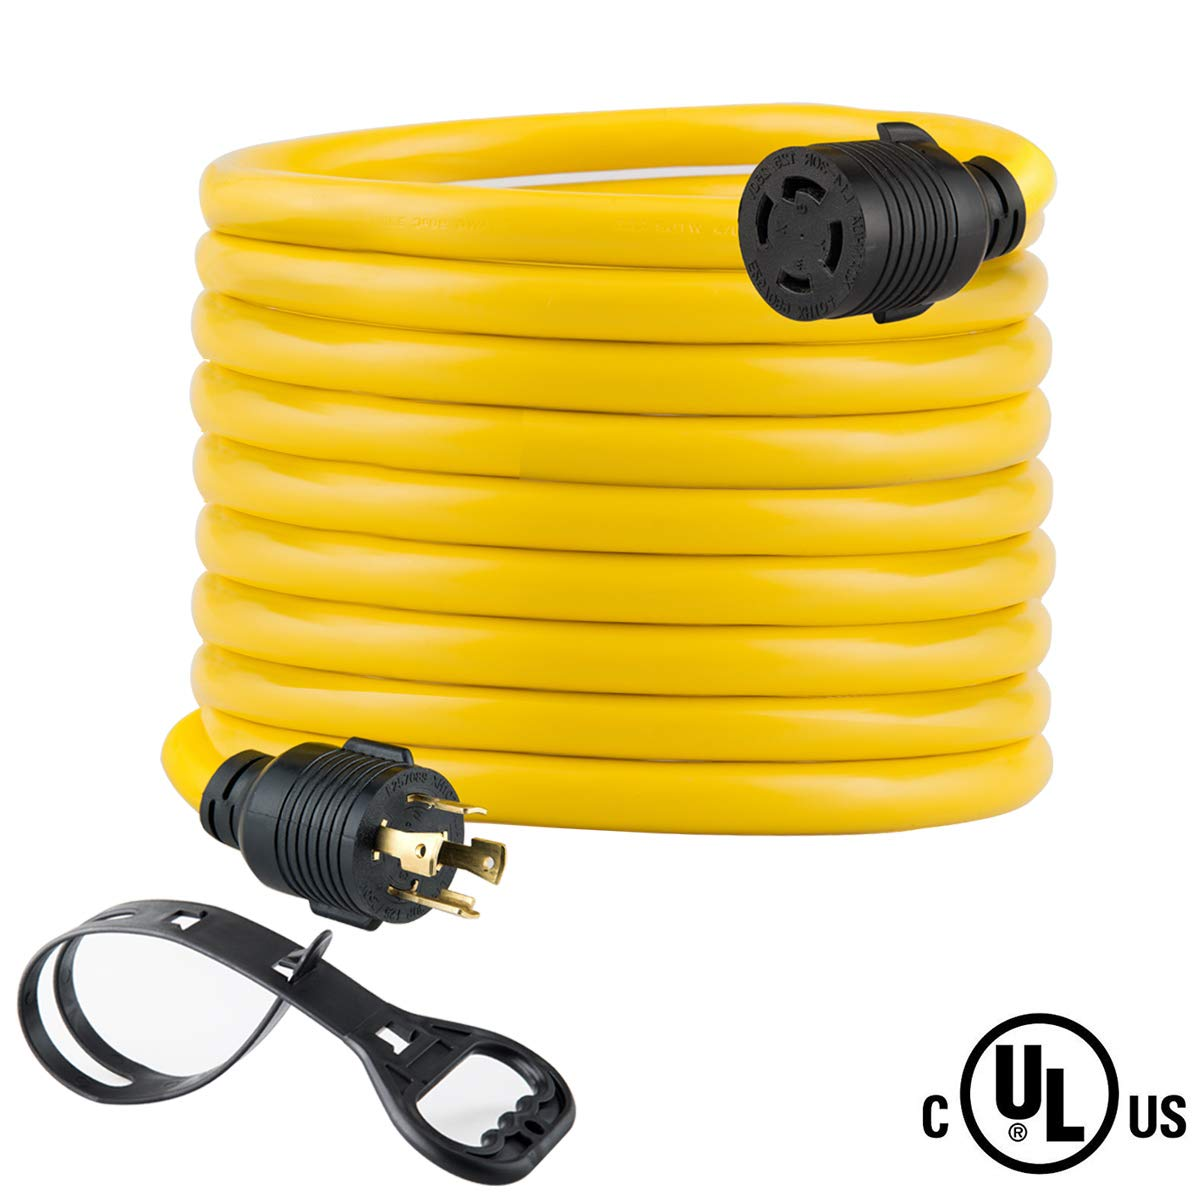 25FT Heavy Duty Generator Locking Power Cord NEMA L14-30P/L14-30R,4X10 Gauge SJTW Cable, 125/250V 30Amp 7500 Watts Yellow Generator Lock Extension Cord with UL Listed Yodotek by Yodotek